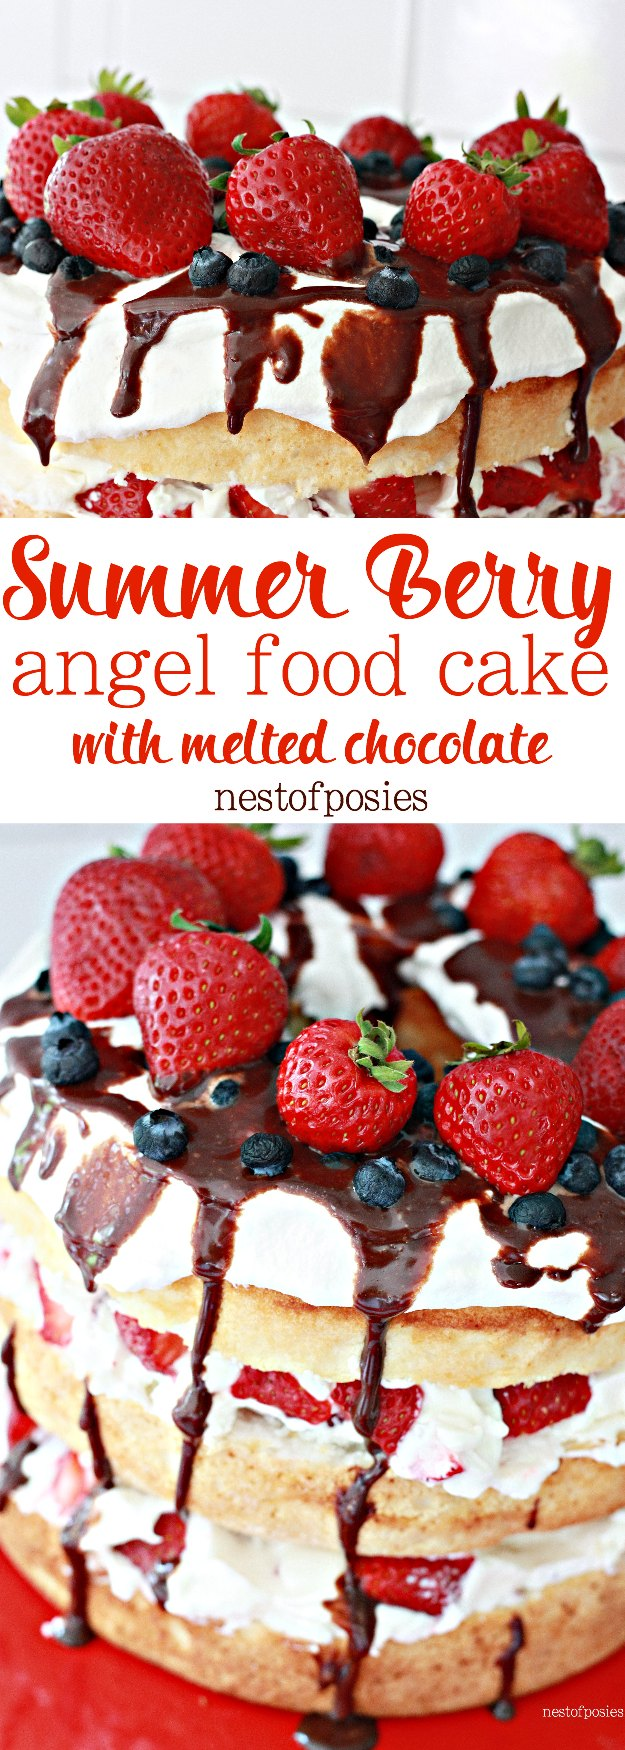 Summer Berry Angel Food Cake with Melted Chocolate drizzled on top